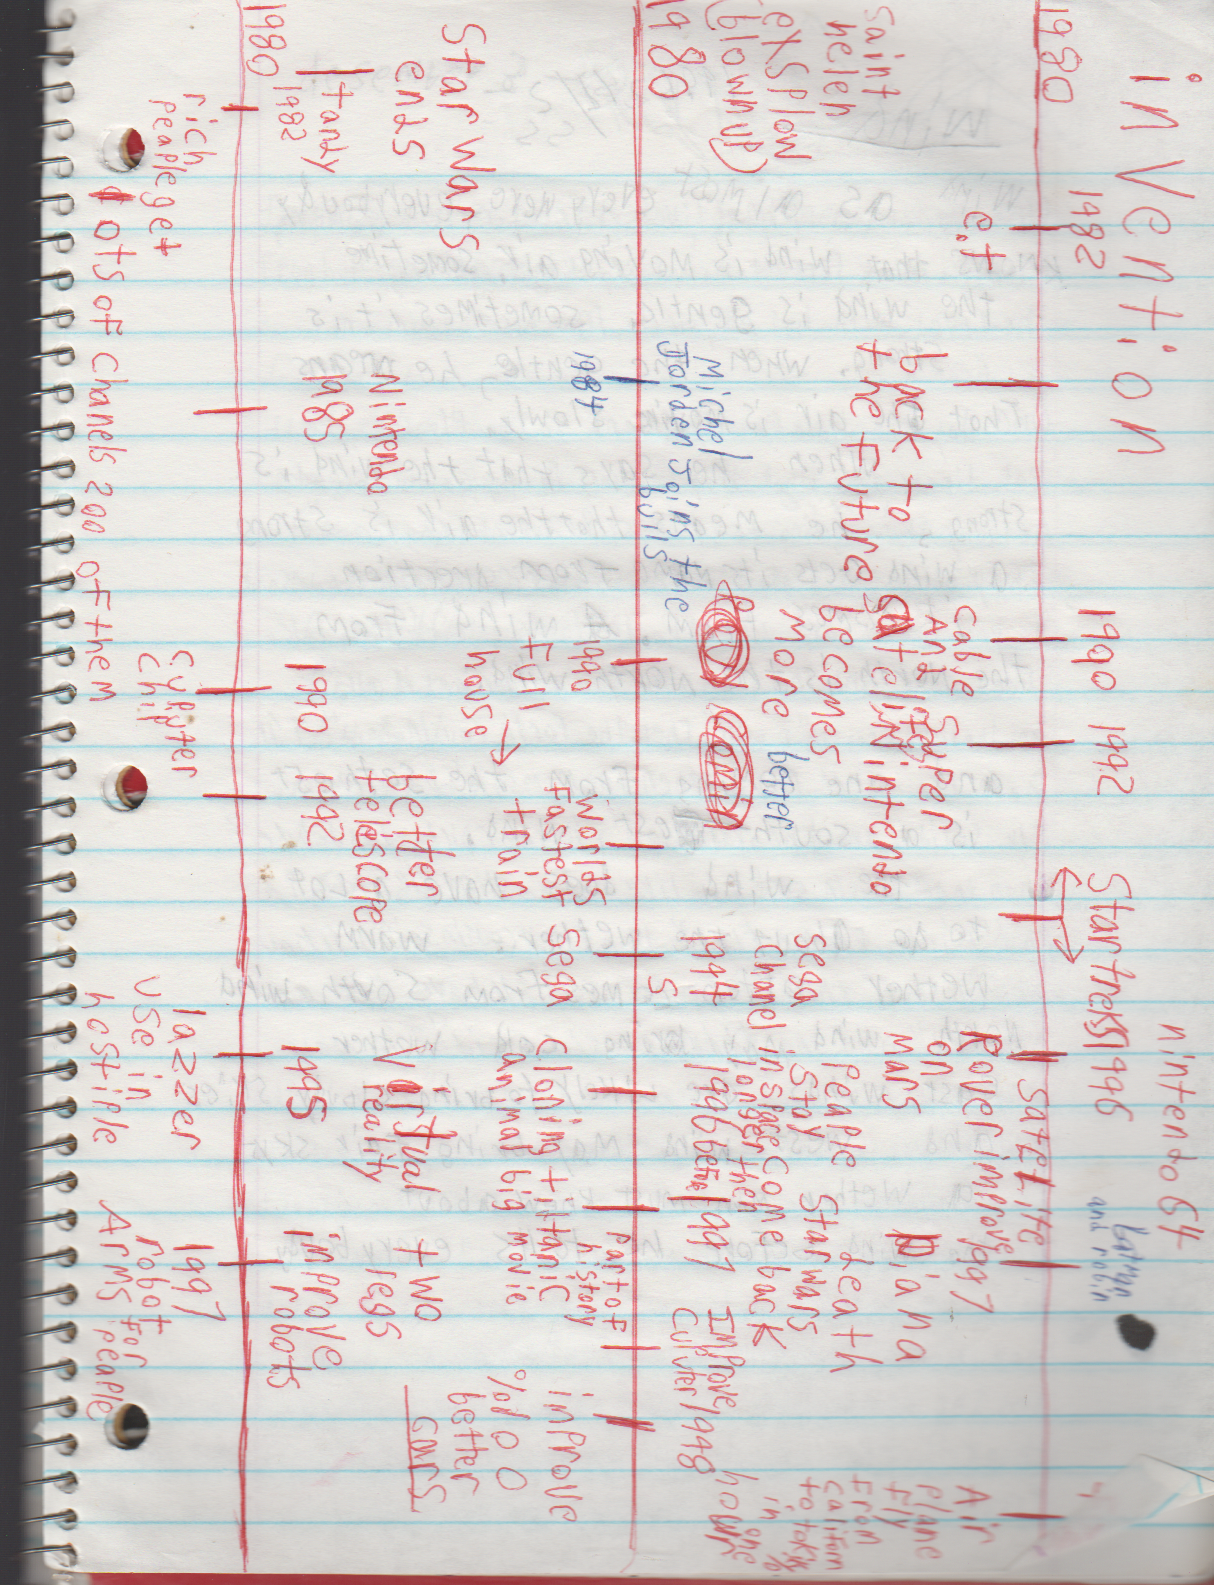 1996-08-18 - Saturday - 11 yr old Joey Arnold's School Book, dates through to 1998 apx, mostly 96, Writings, Drawings, Etc-080.png